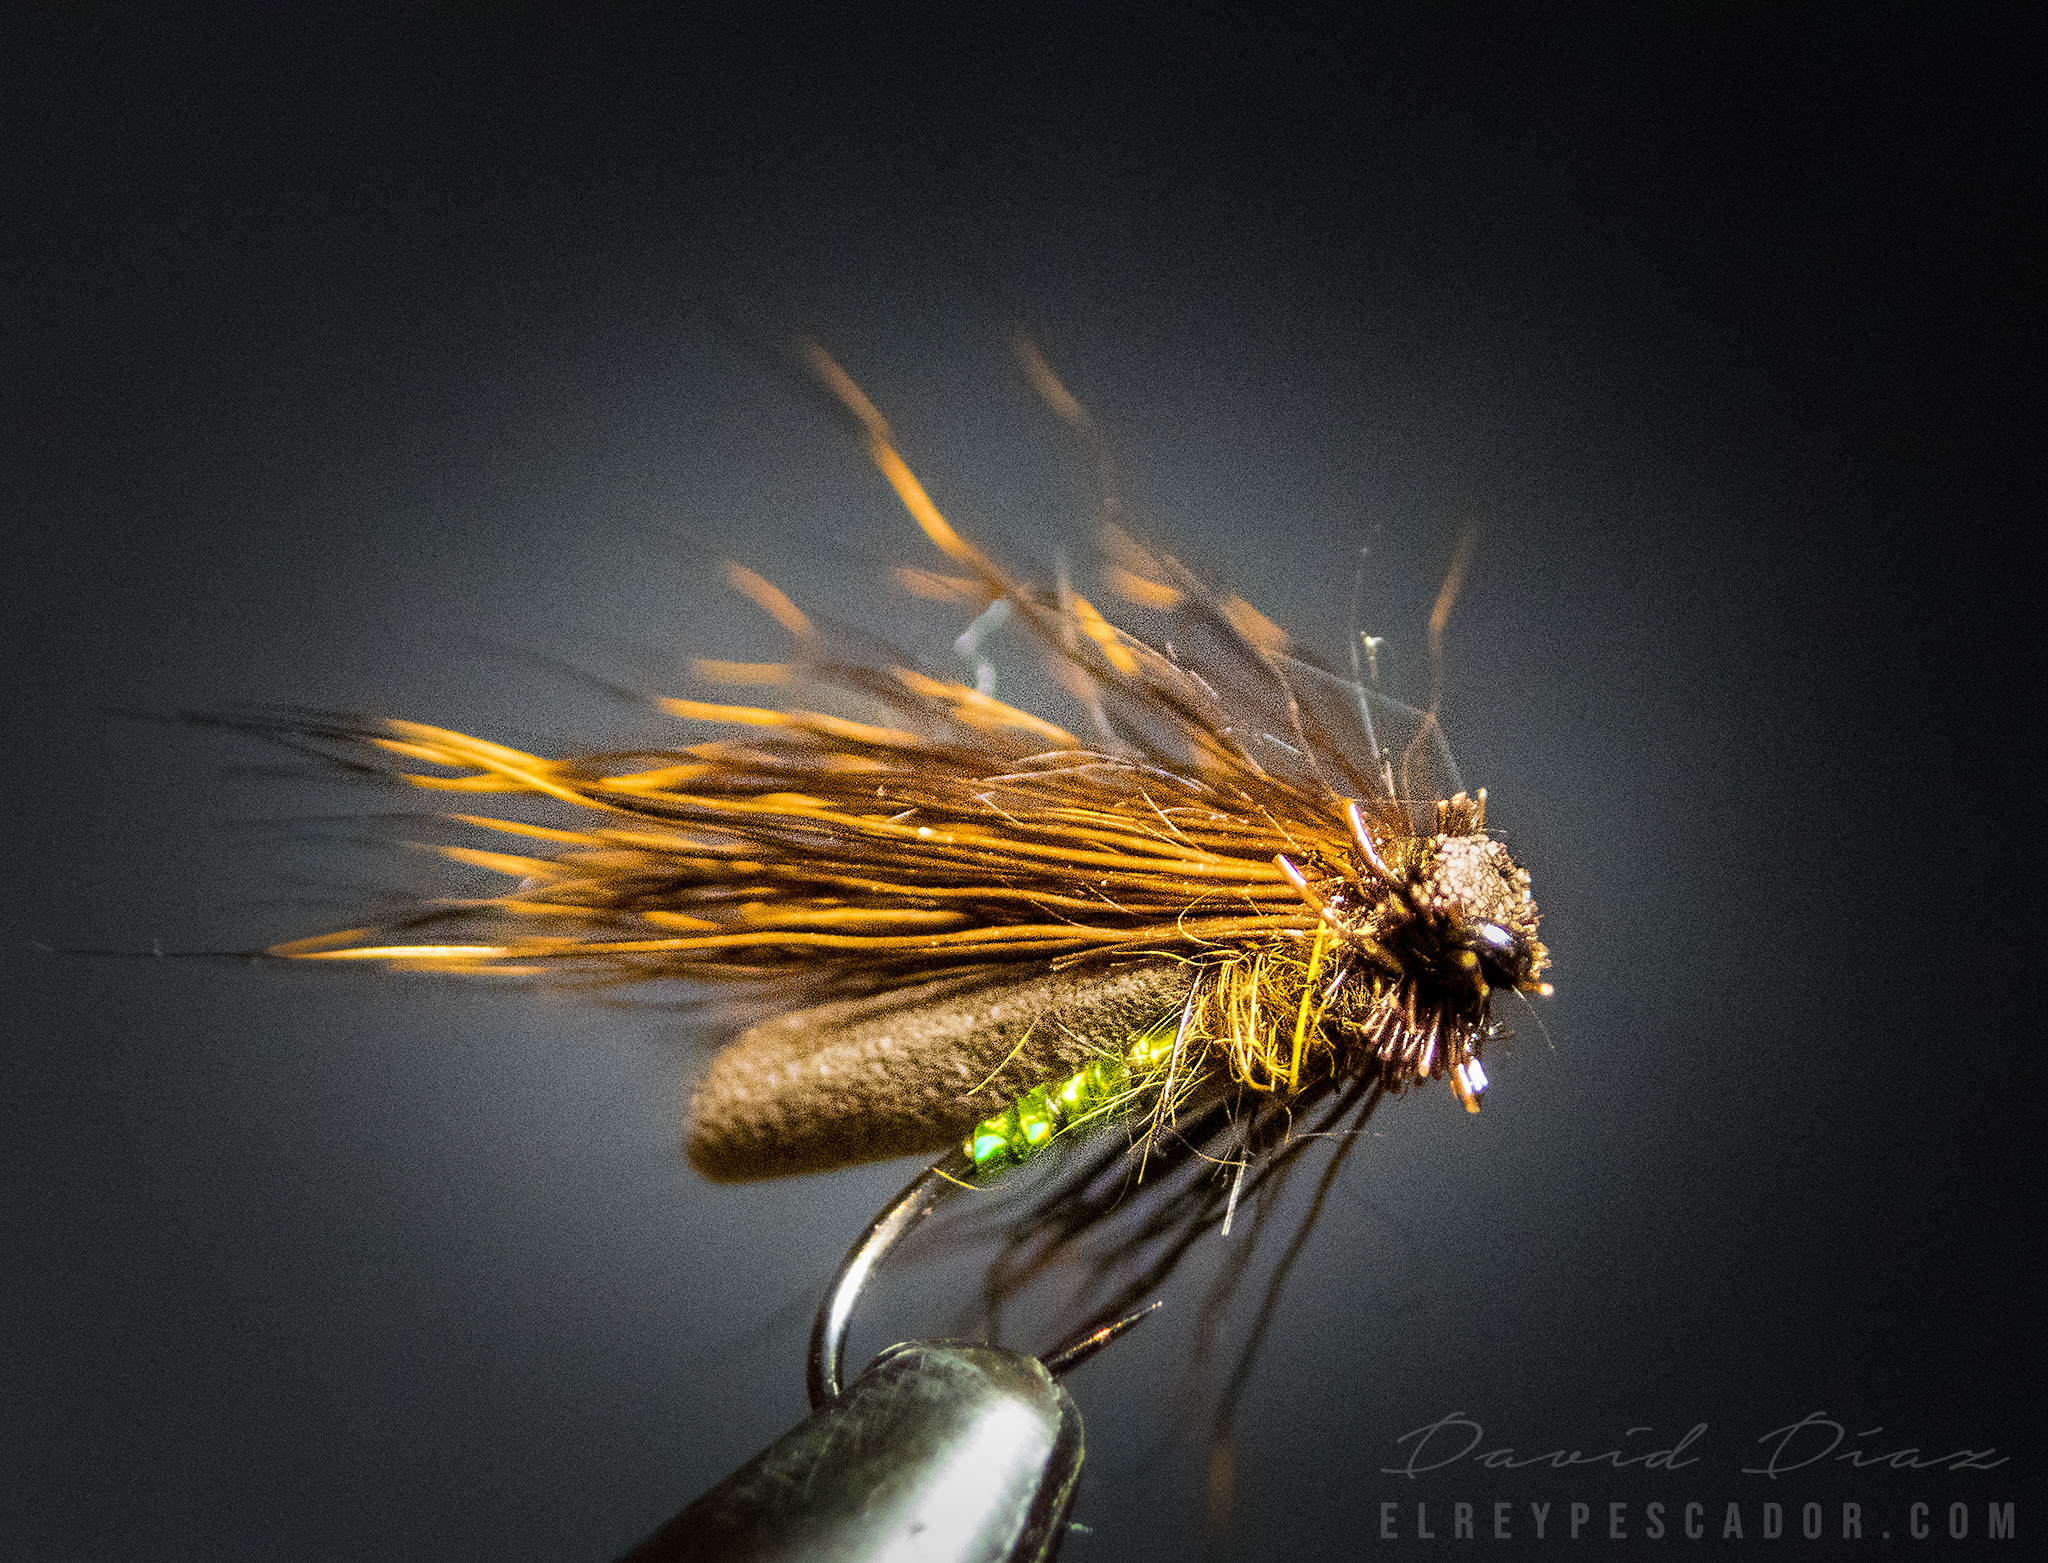 Flytying - Deer hair + foam caddis